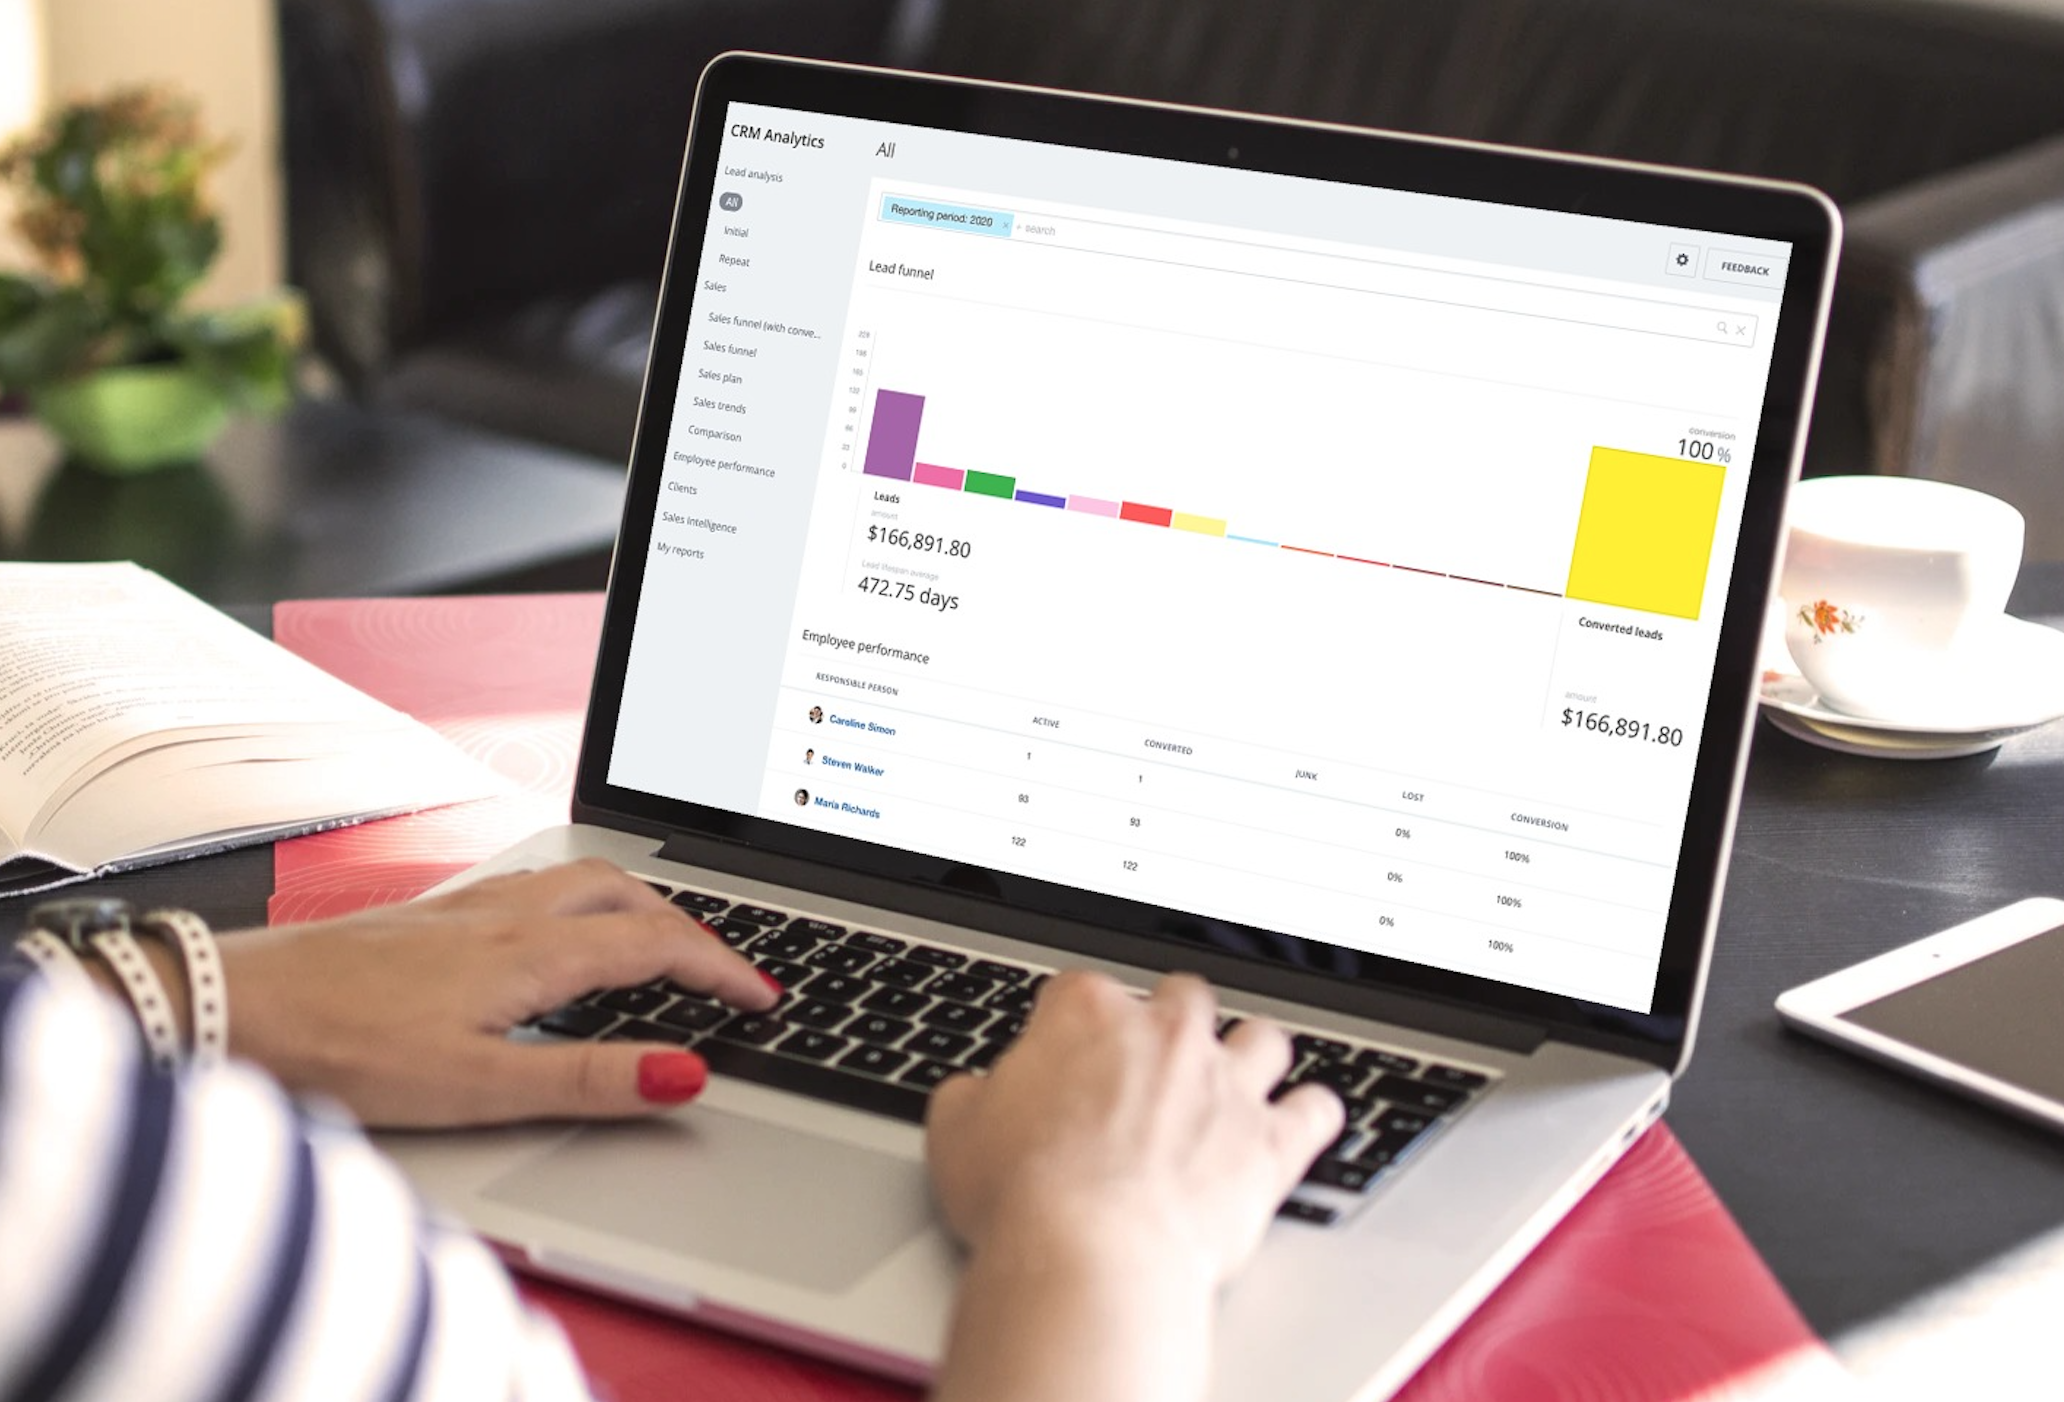 Reporting period in CRM Analytics